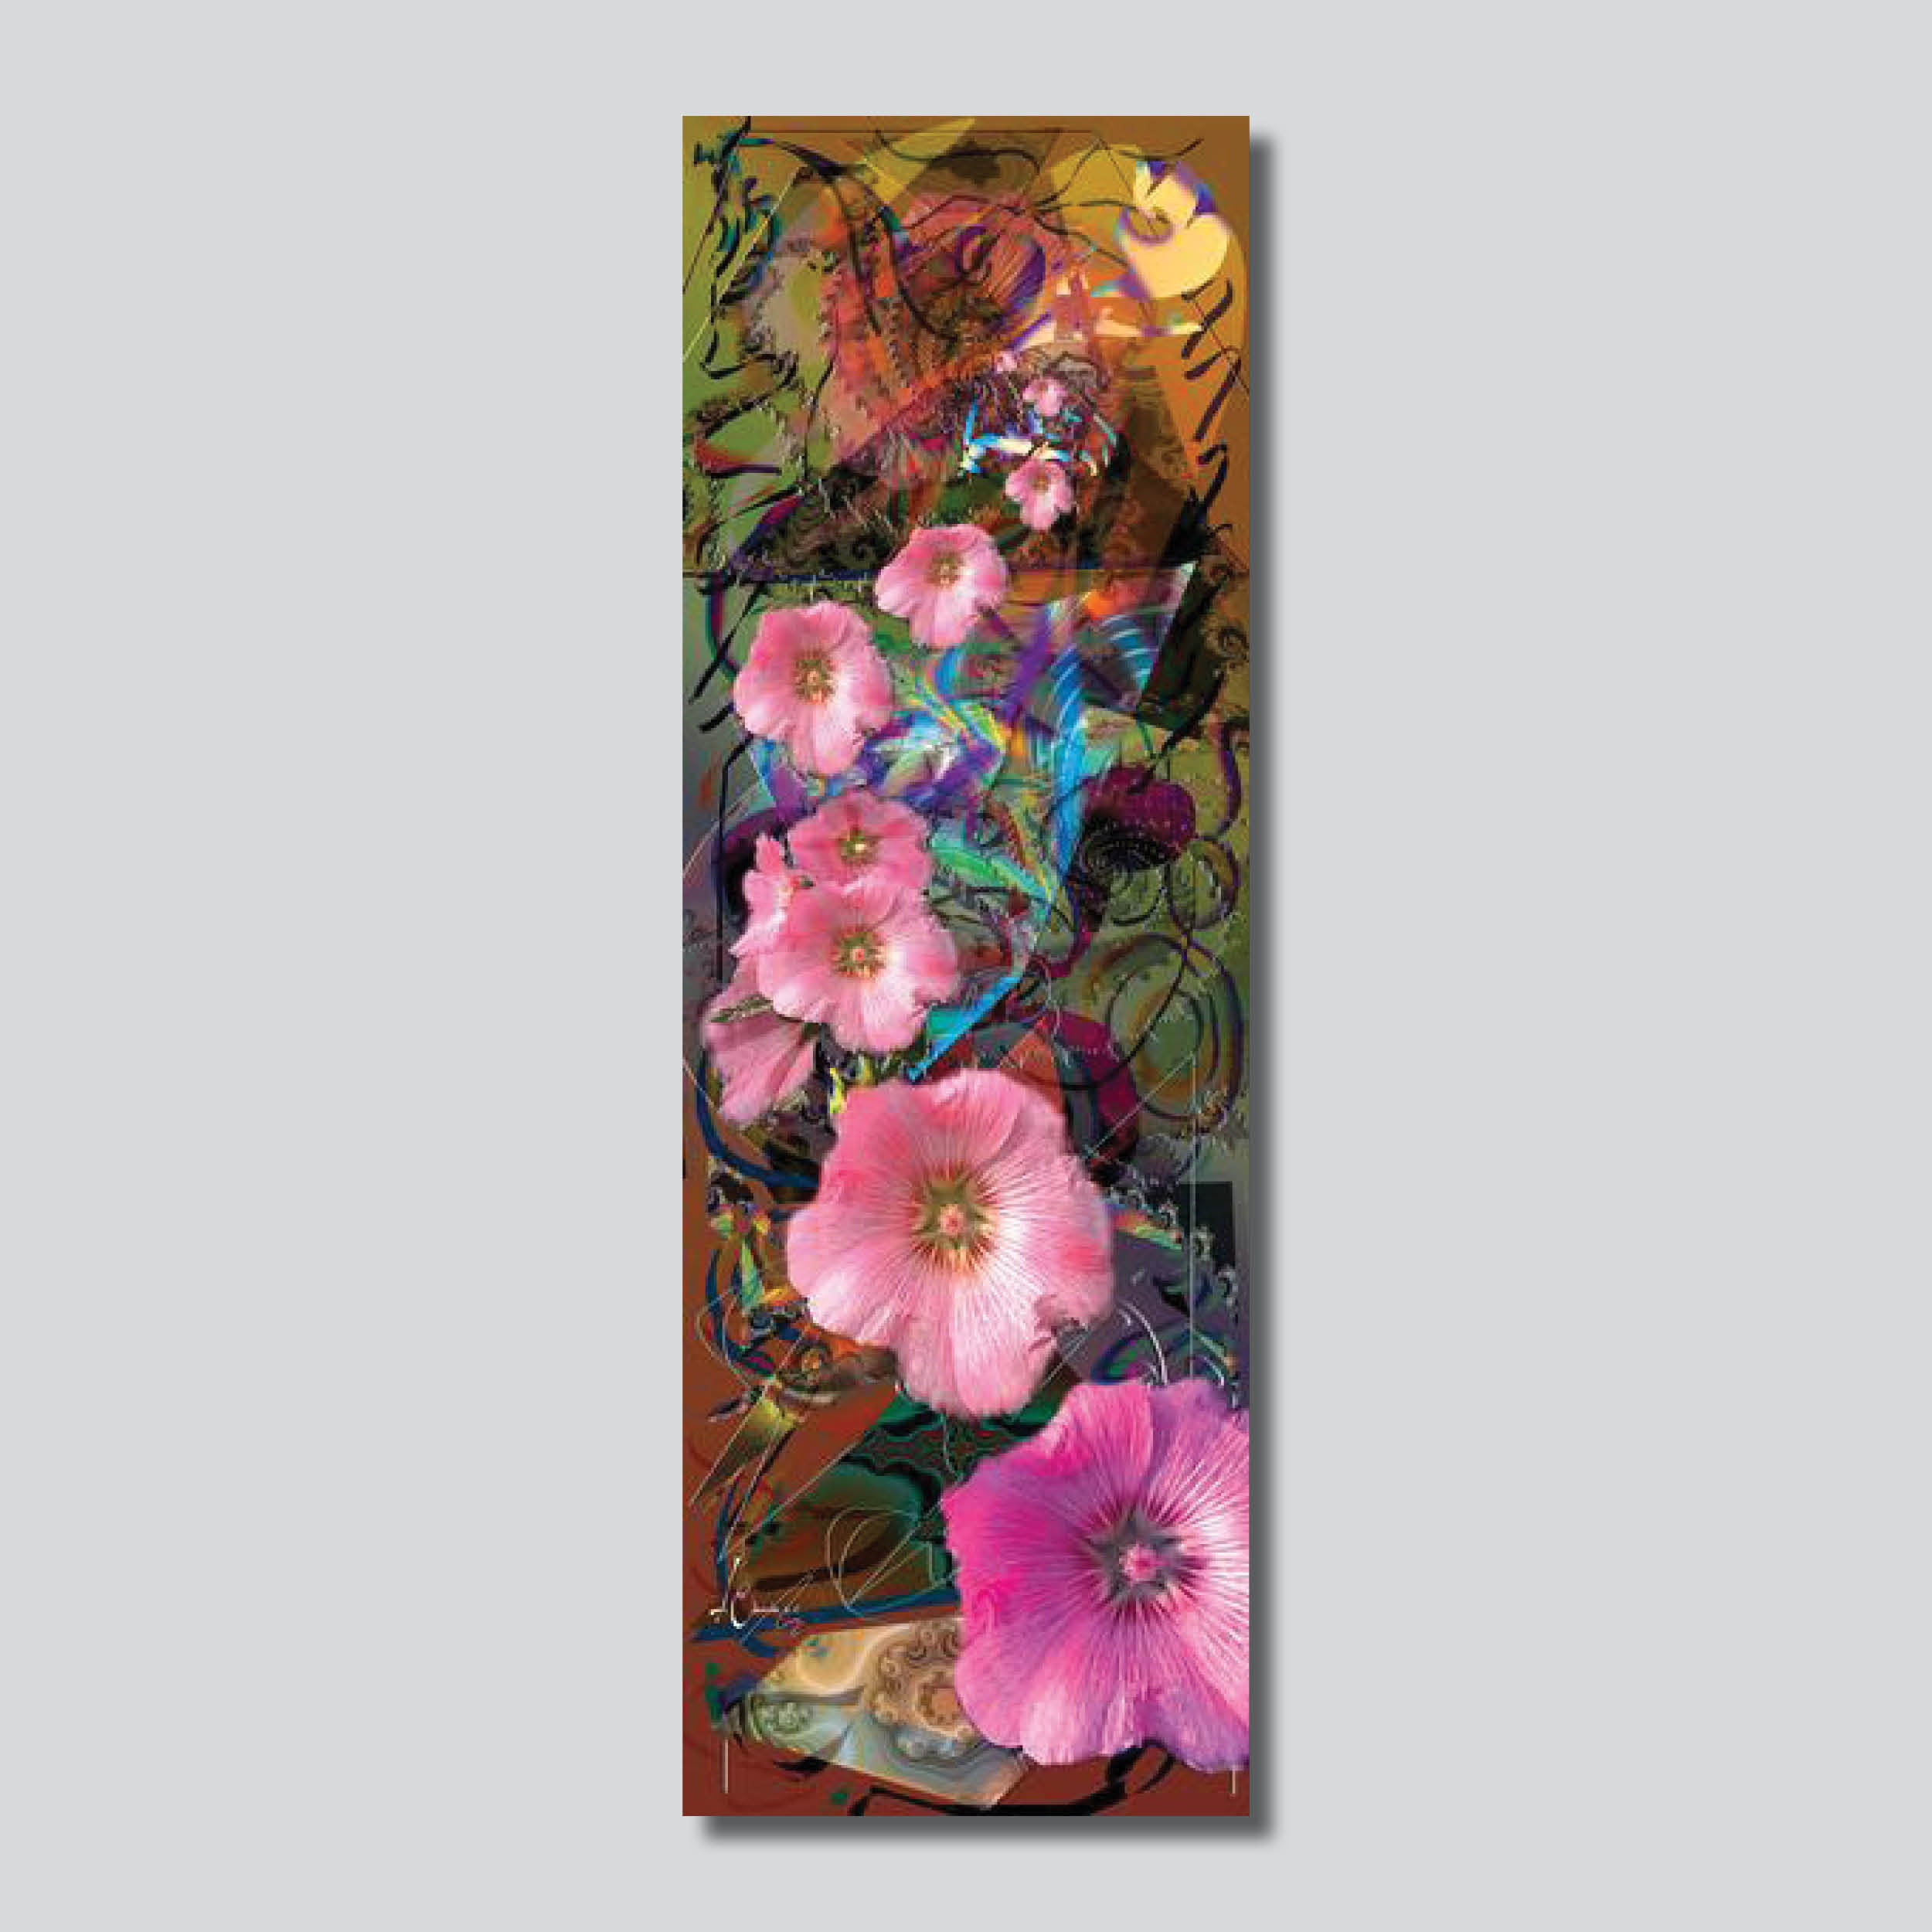 "Flowers Of The Wind 10"" x 30"" Giclee Printed On High Gloss Metal"